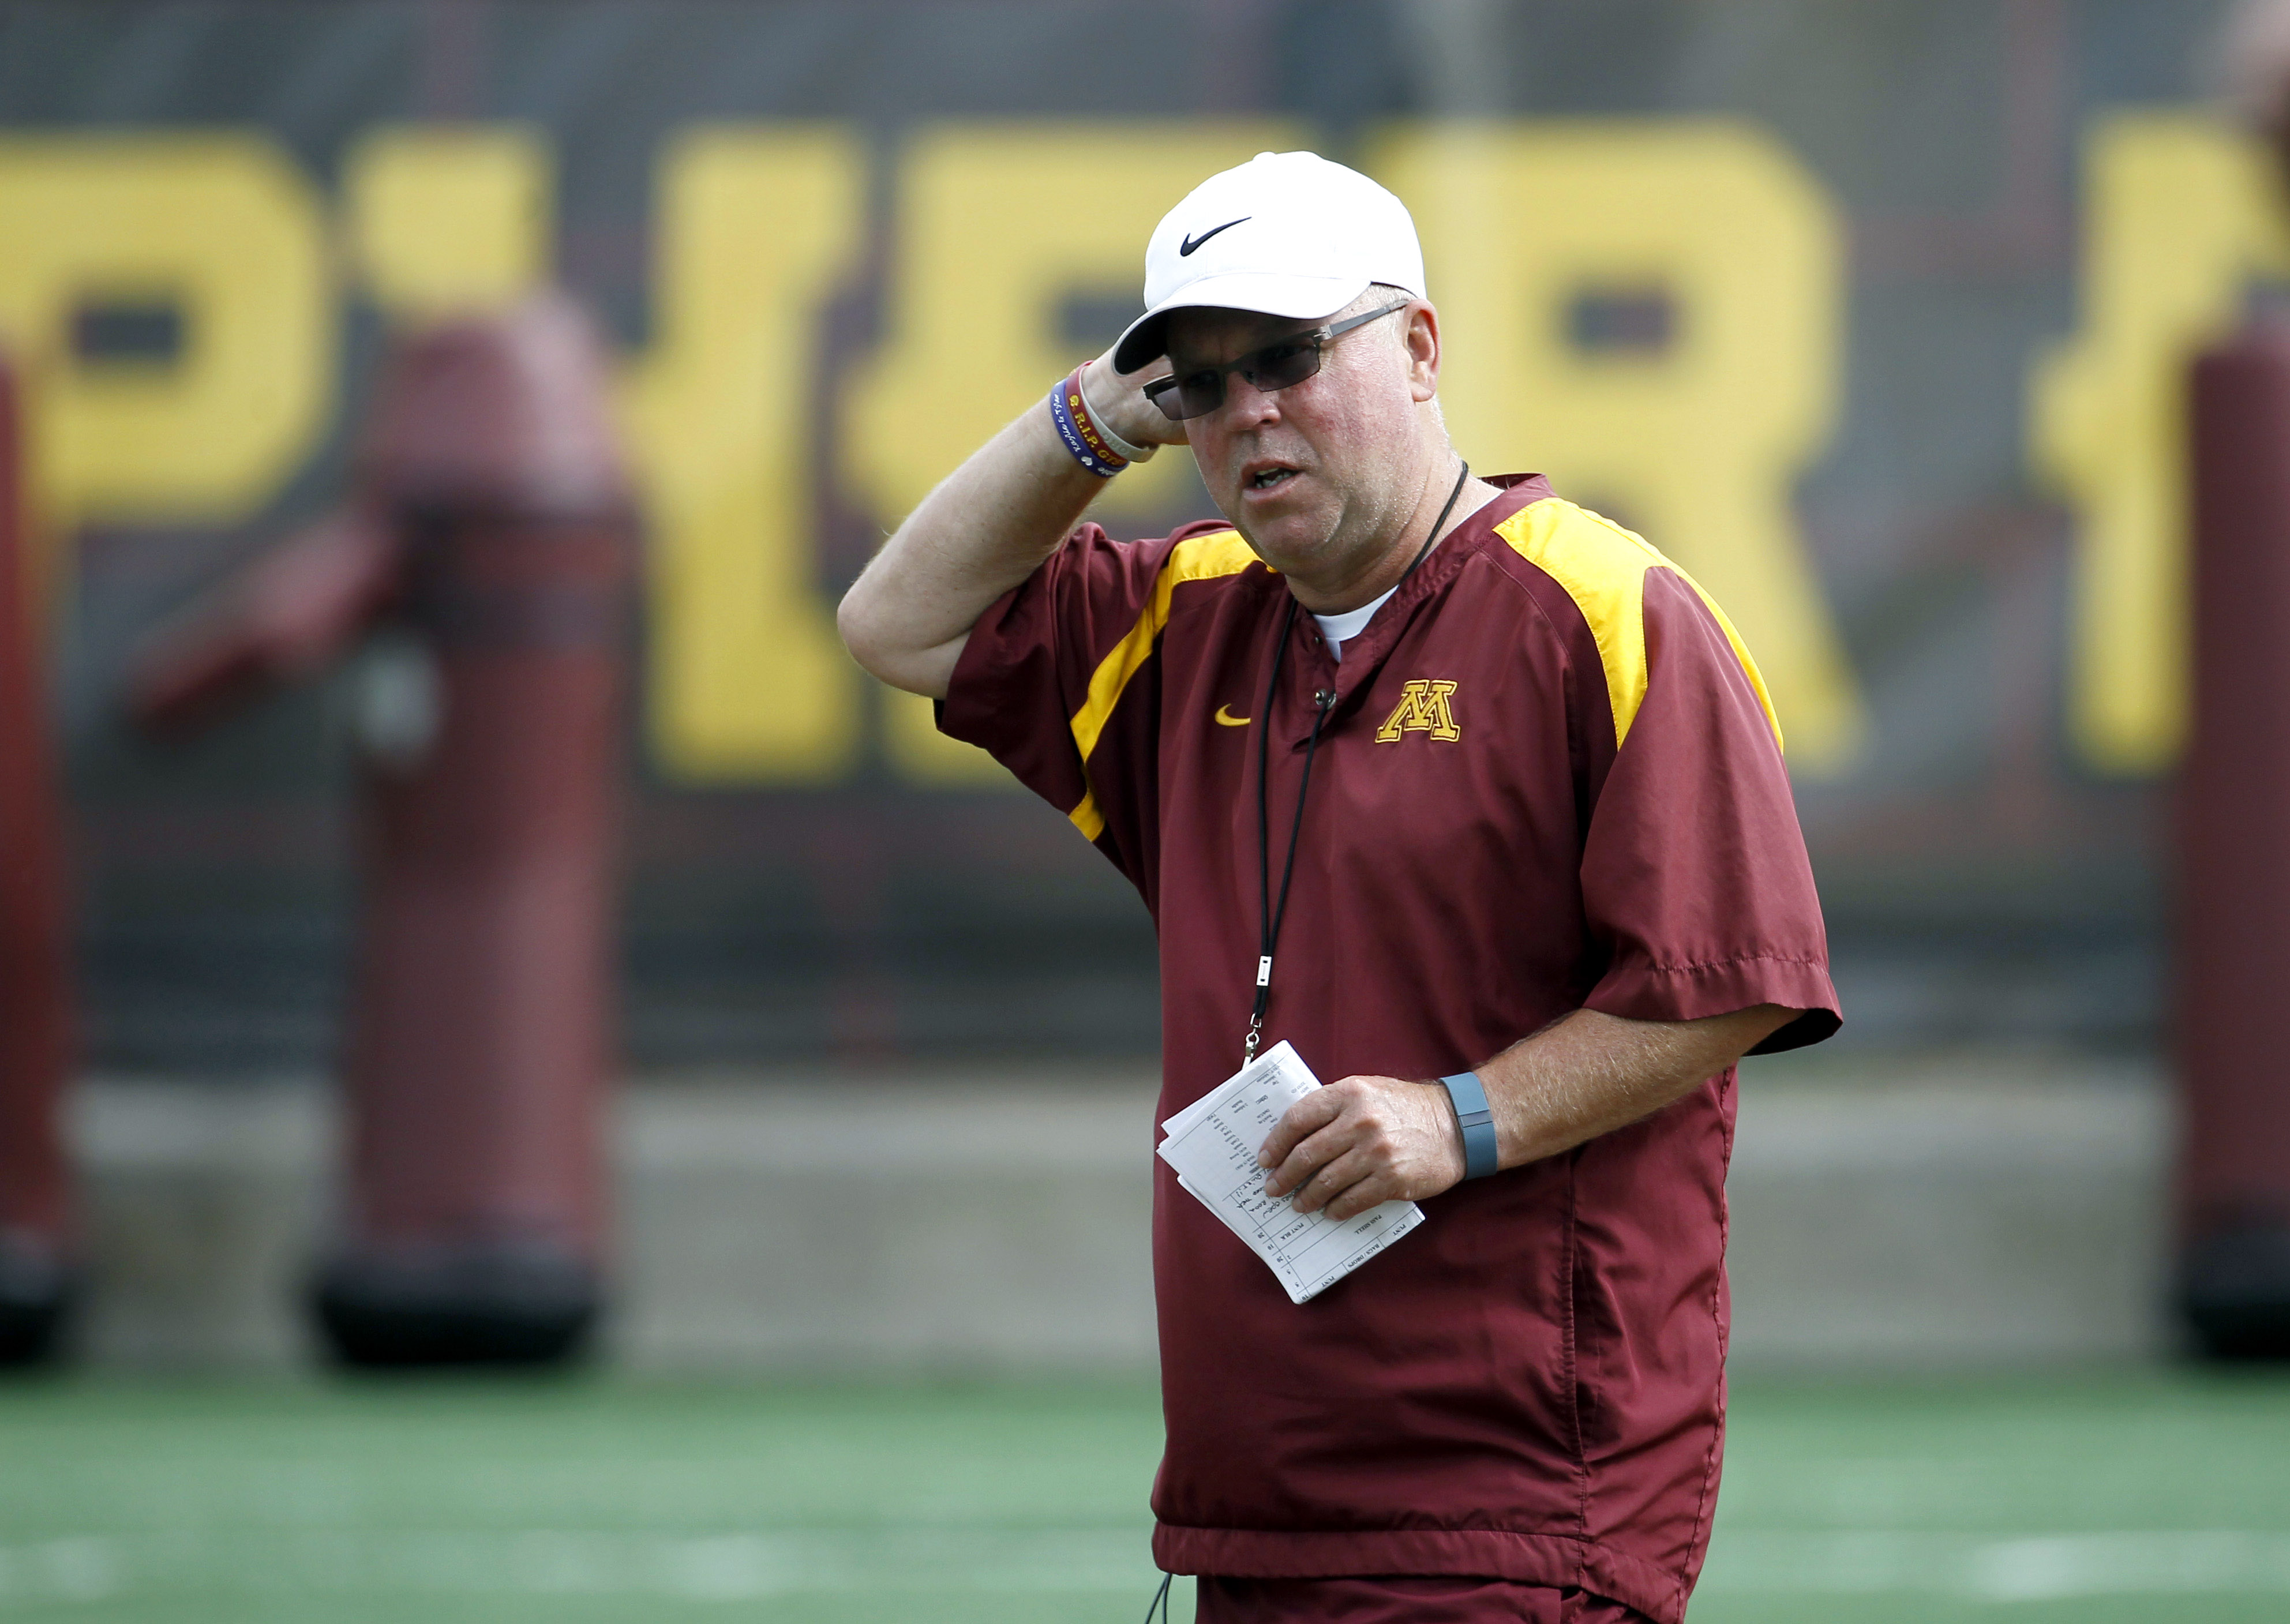 Minnesota head coach Jerry Kill watches his players during NCAA college football training camp in Minneapolis Friday, Aug. 7, 2015. (AP Photo/Ann Heisenfelt)